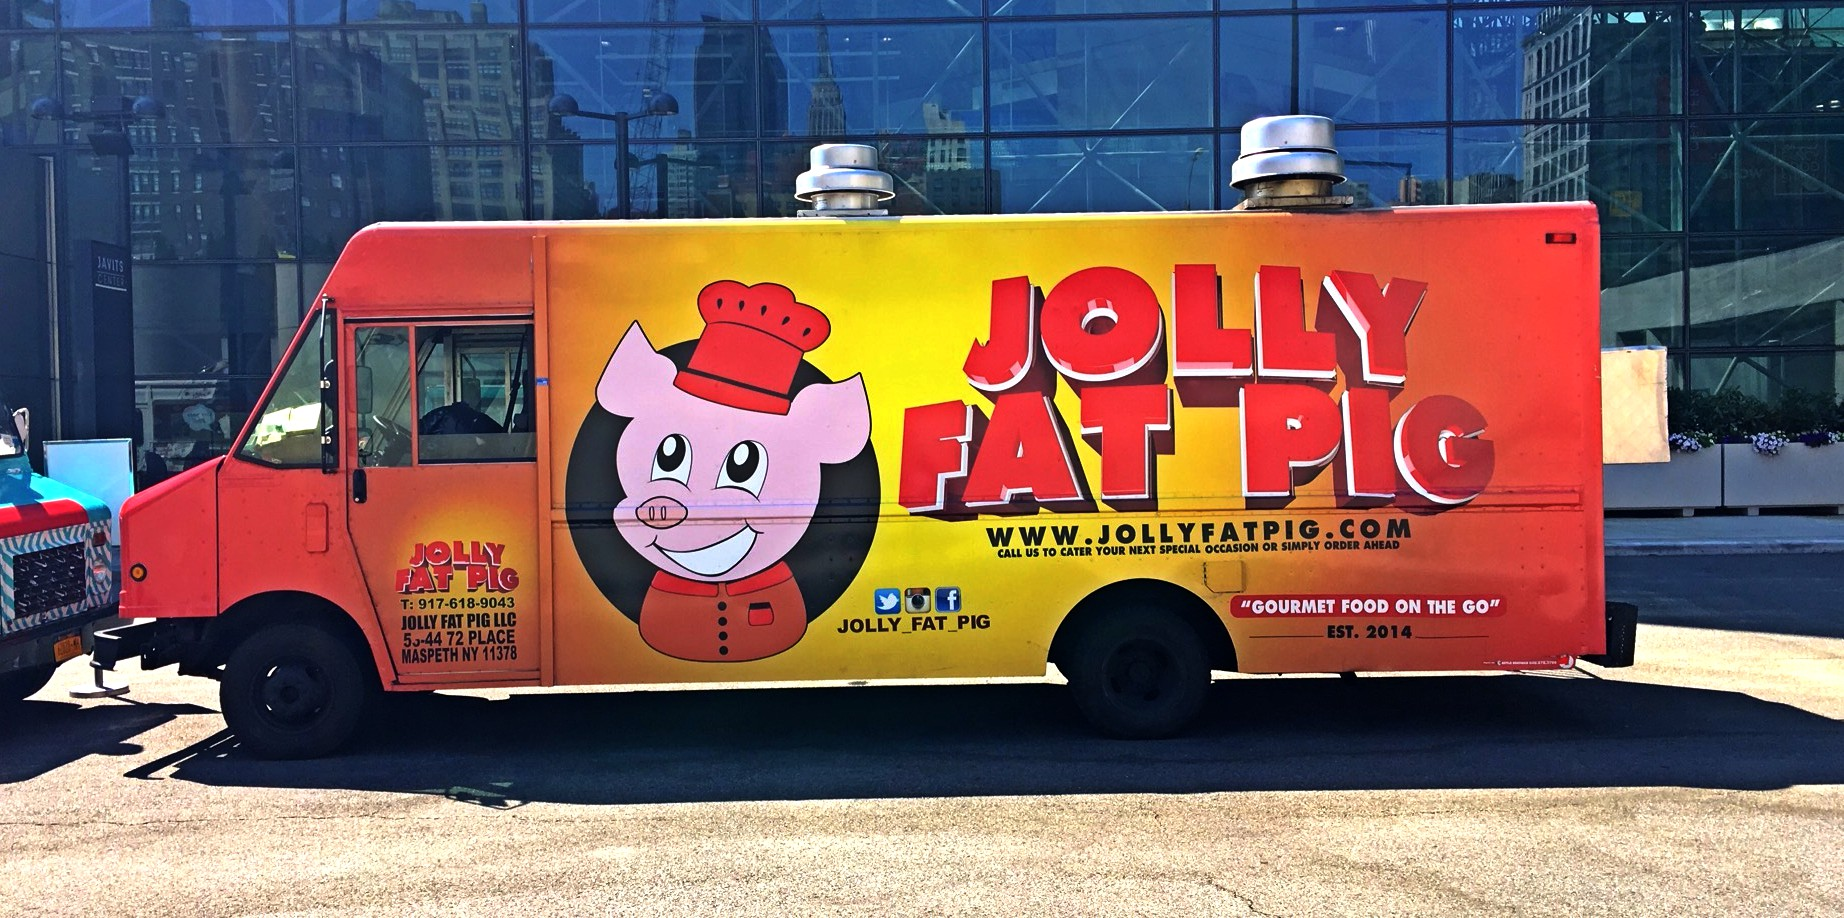 Jolly Fat Pig .jpg